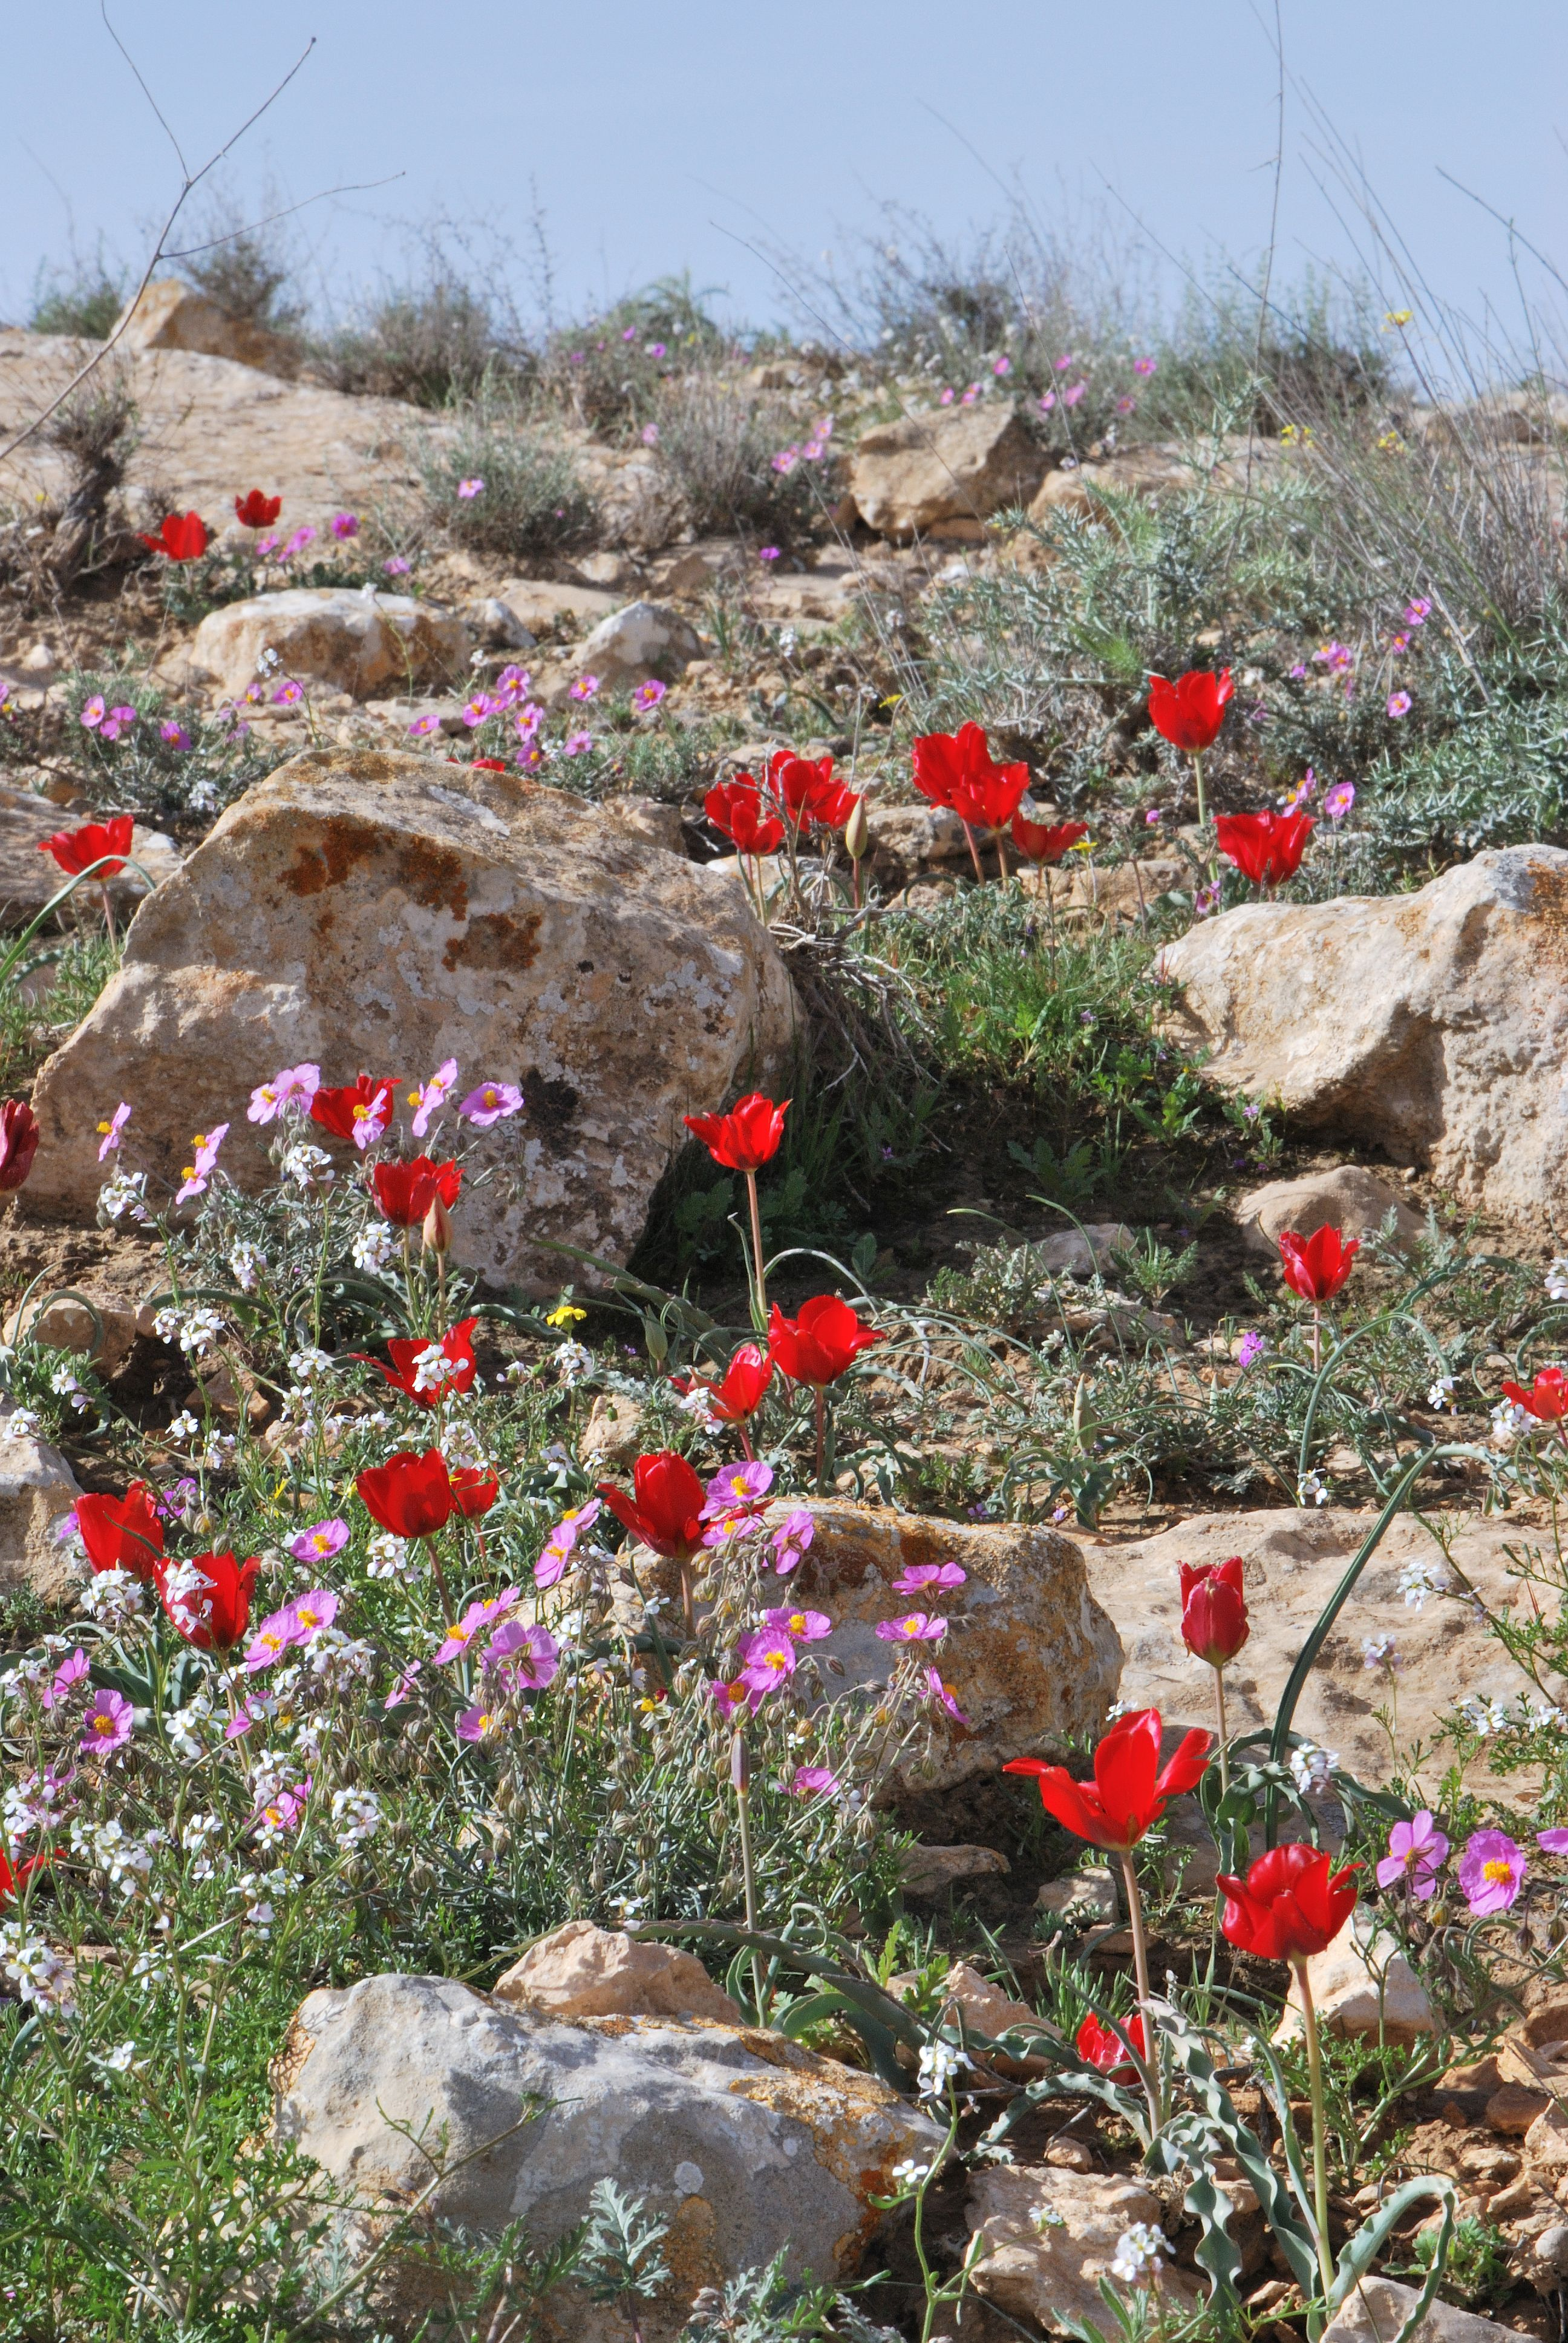 Spring blooms in the Negev, including Tulipa systola, Helianthemum vesicarium and Erucaria microcarpa.